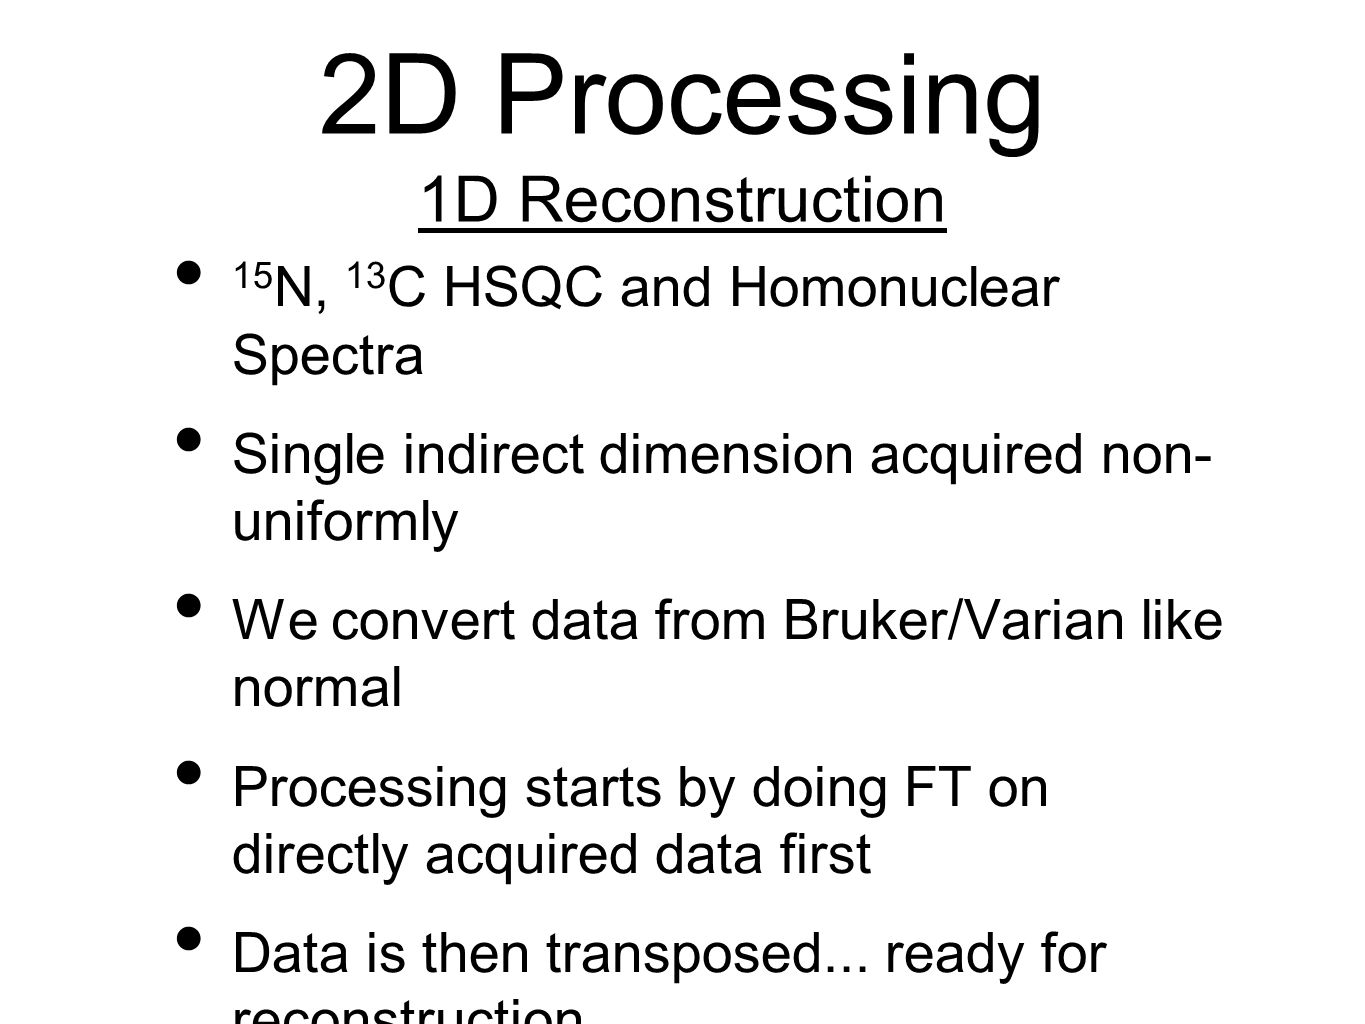 2D Processing 1D Reconstruction 15 N, 13 C HSQC and Homonuclear Spectra Single indirect dimension acquired non- uniformly We convert data from Bruker/Varian like normal Processing starts by doing FT on directly acquired data first Data is then transposed...